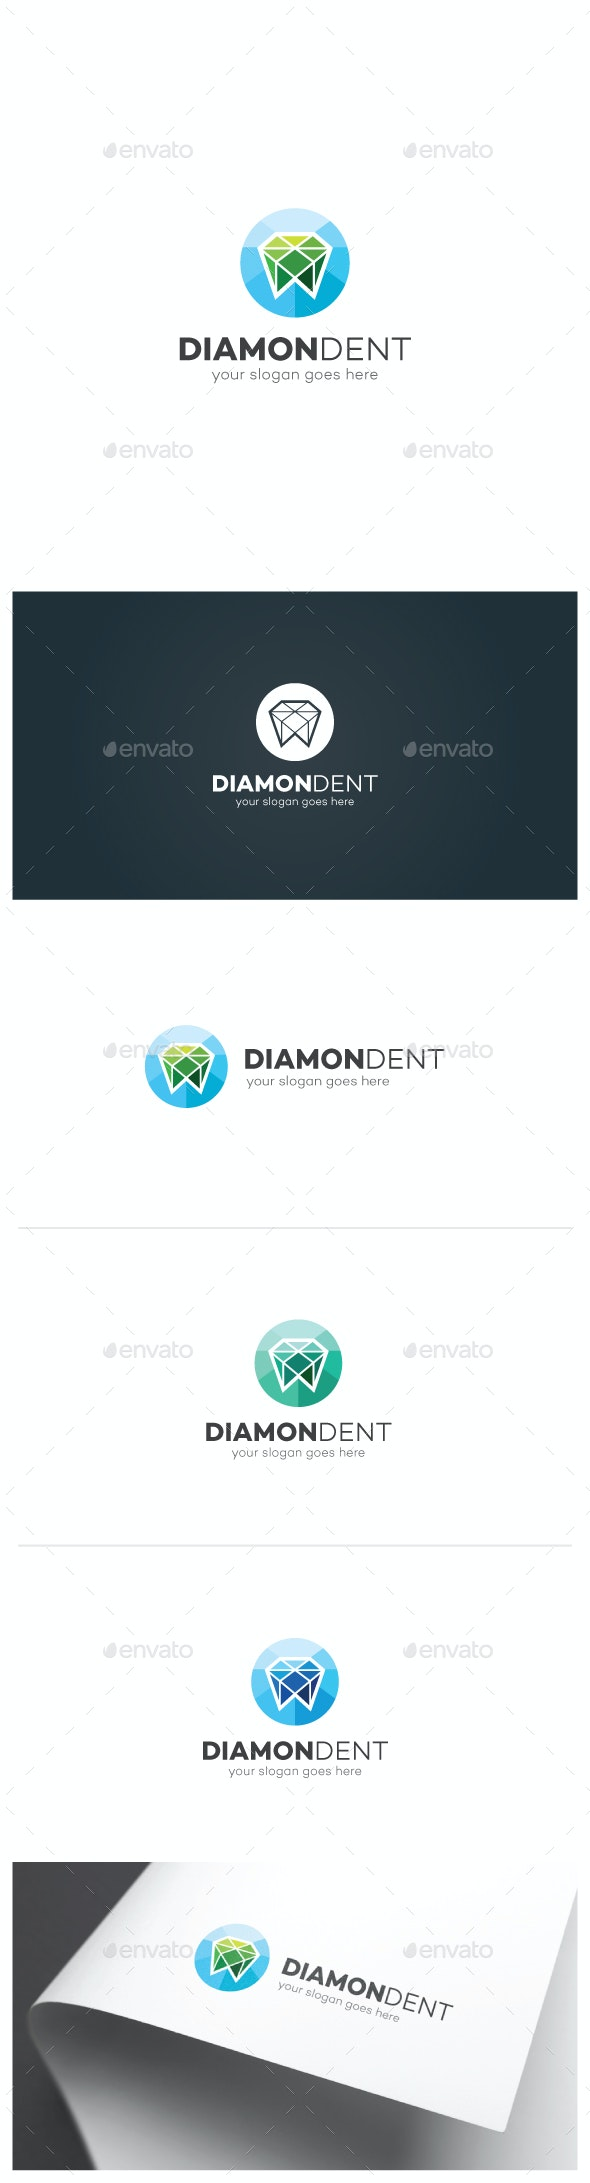 Diamond Tooth Logo - Objects Logo Templates